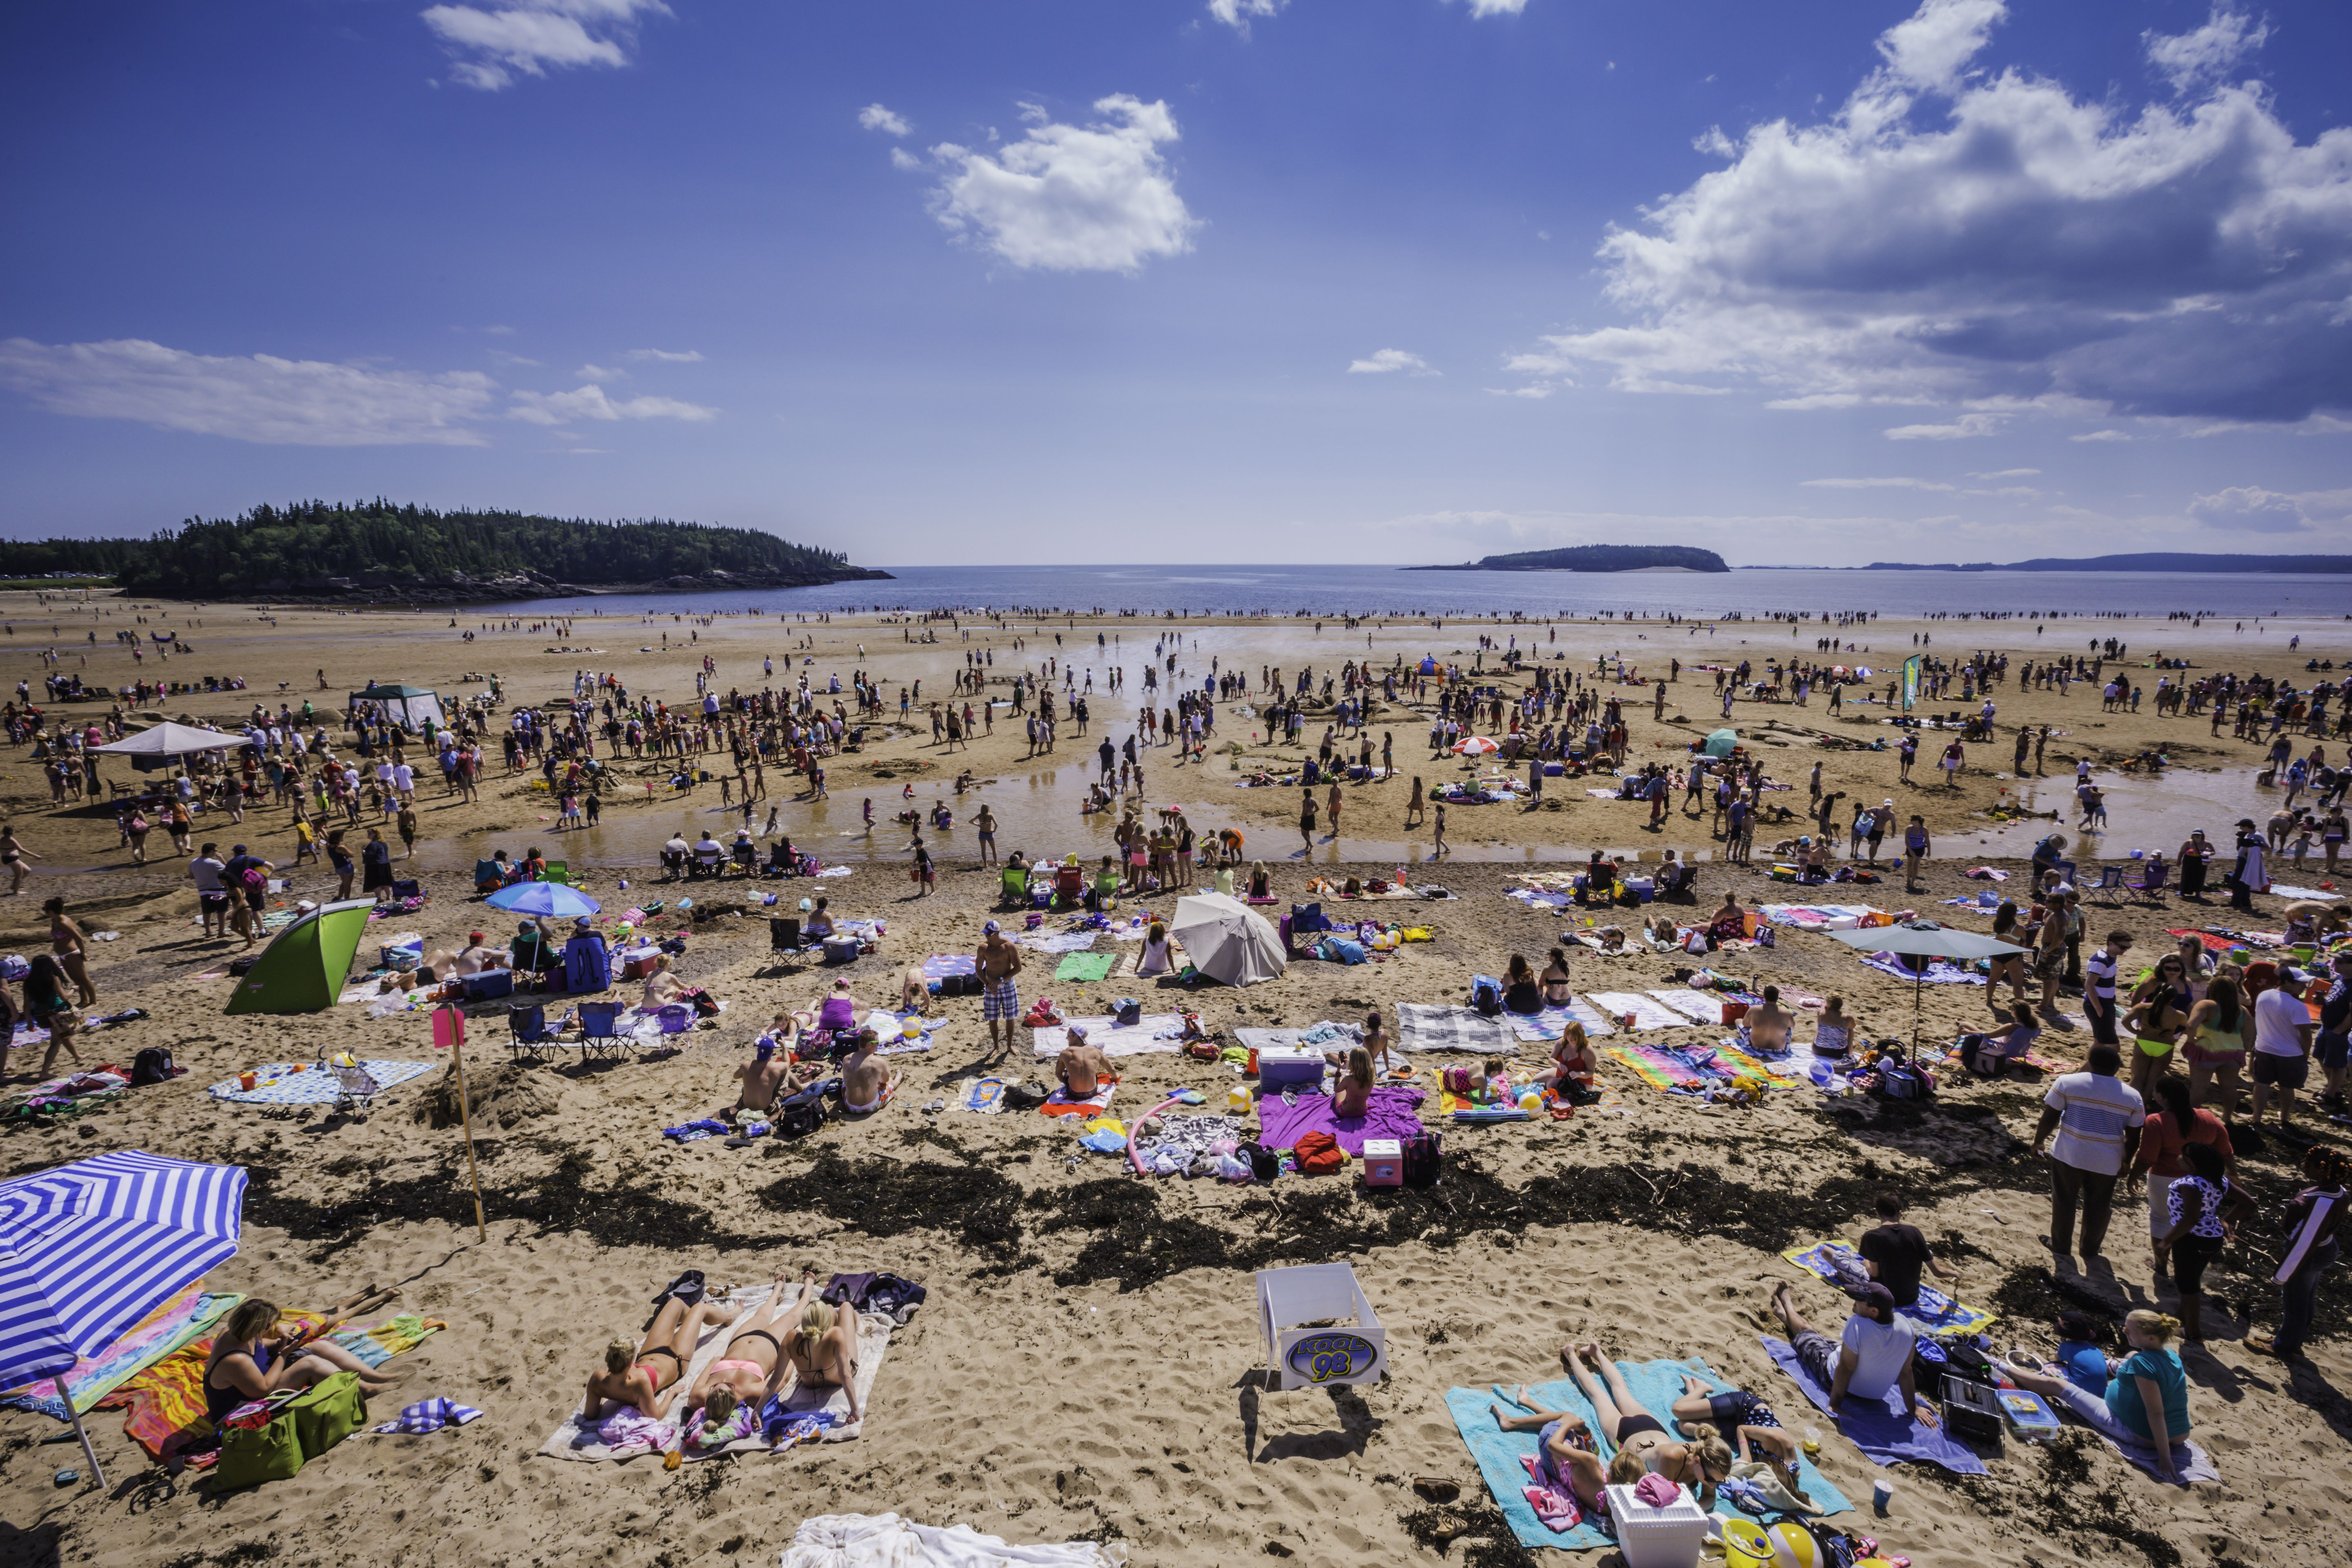 Bay Of Fundy Camping >> New River Beach Provincial Park   New river, Canada travel, New brunswick